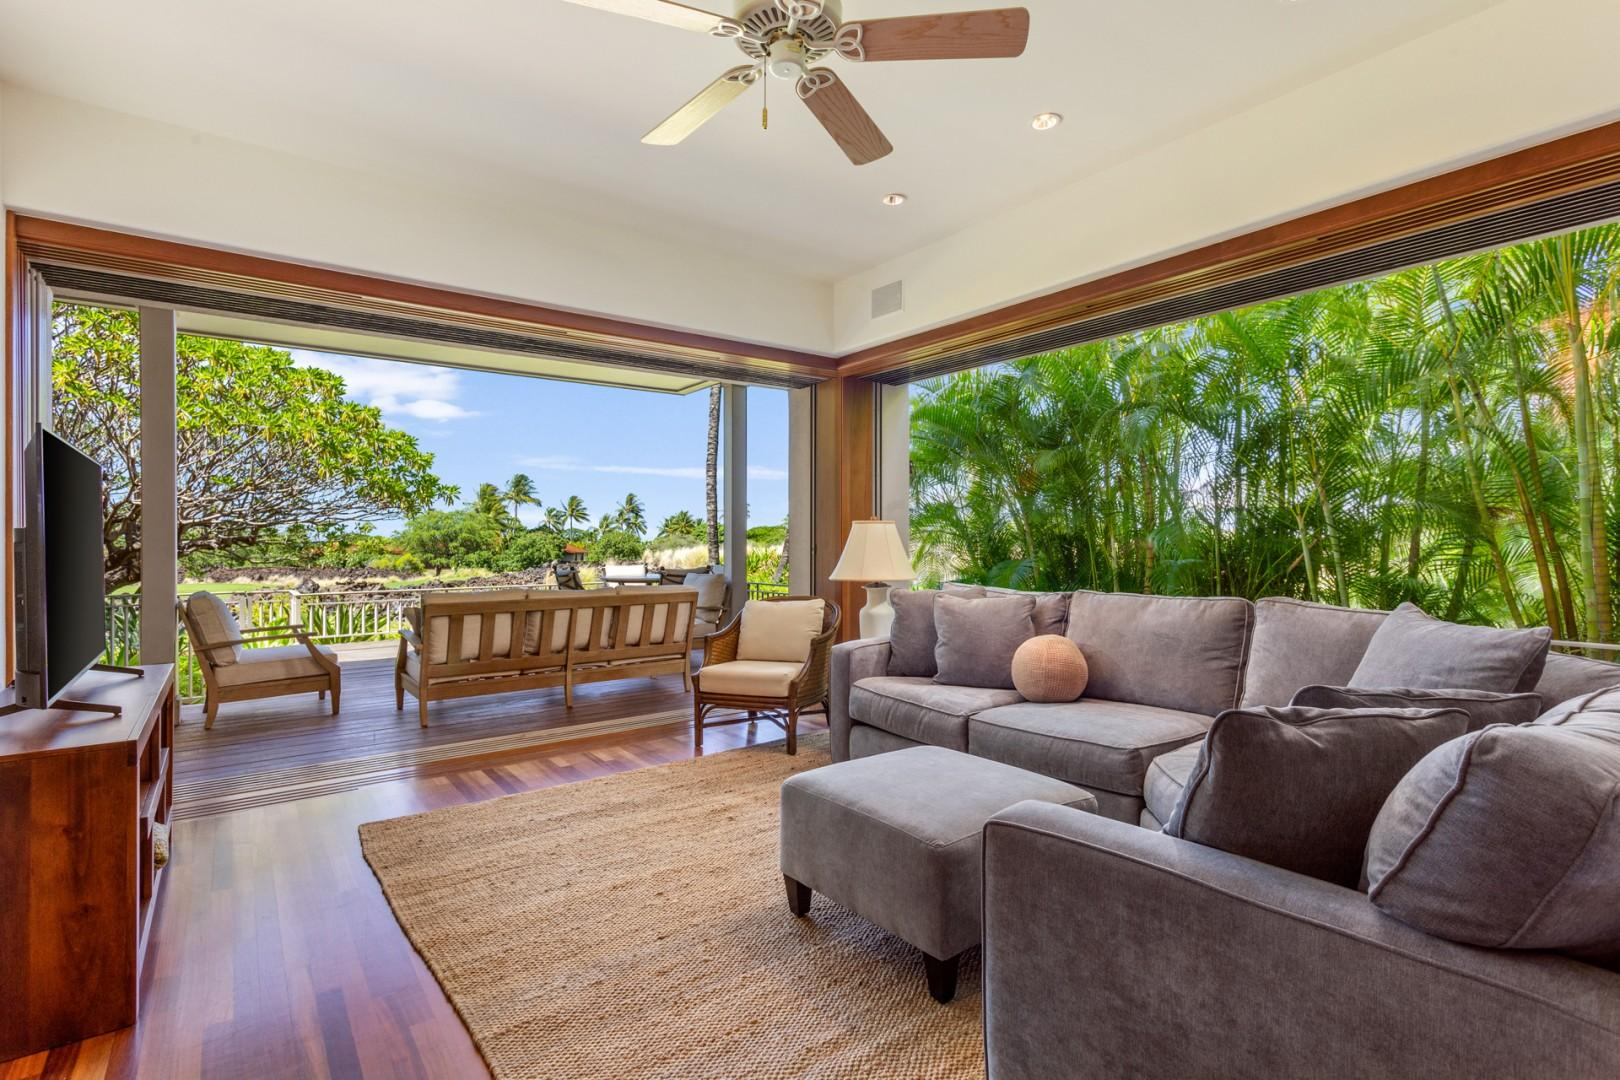 Alternate view of bonus room featuring views of lower lanai and floor to ceiling sliding glass pocket doors.